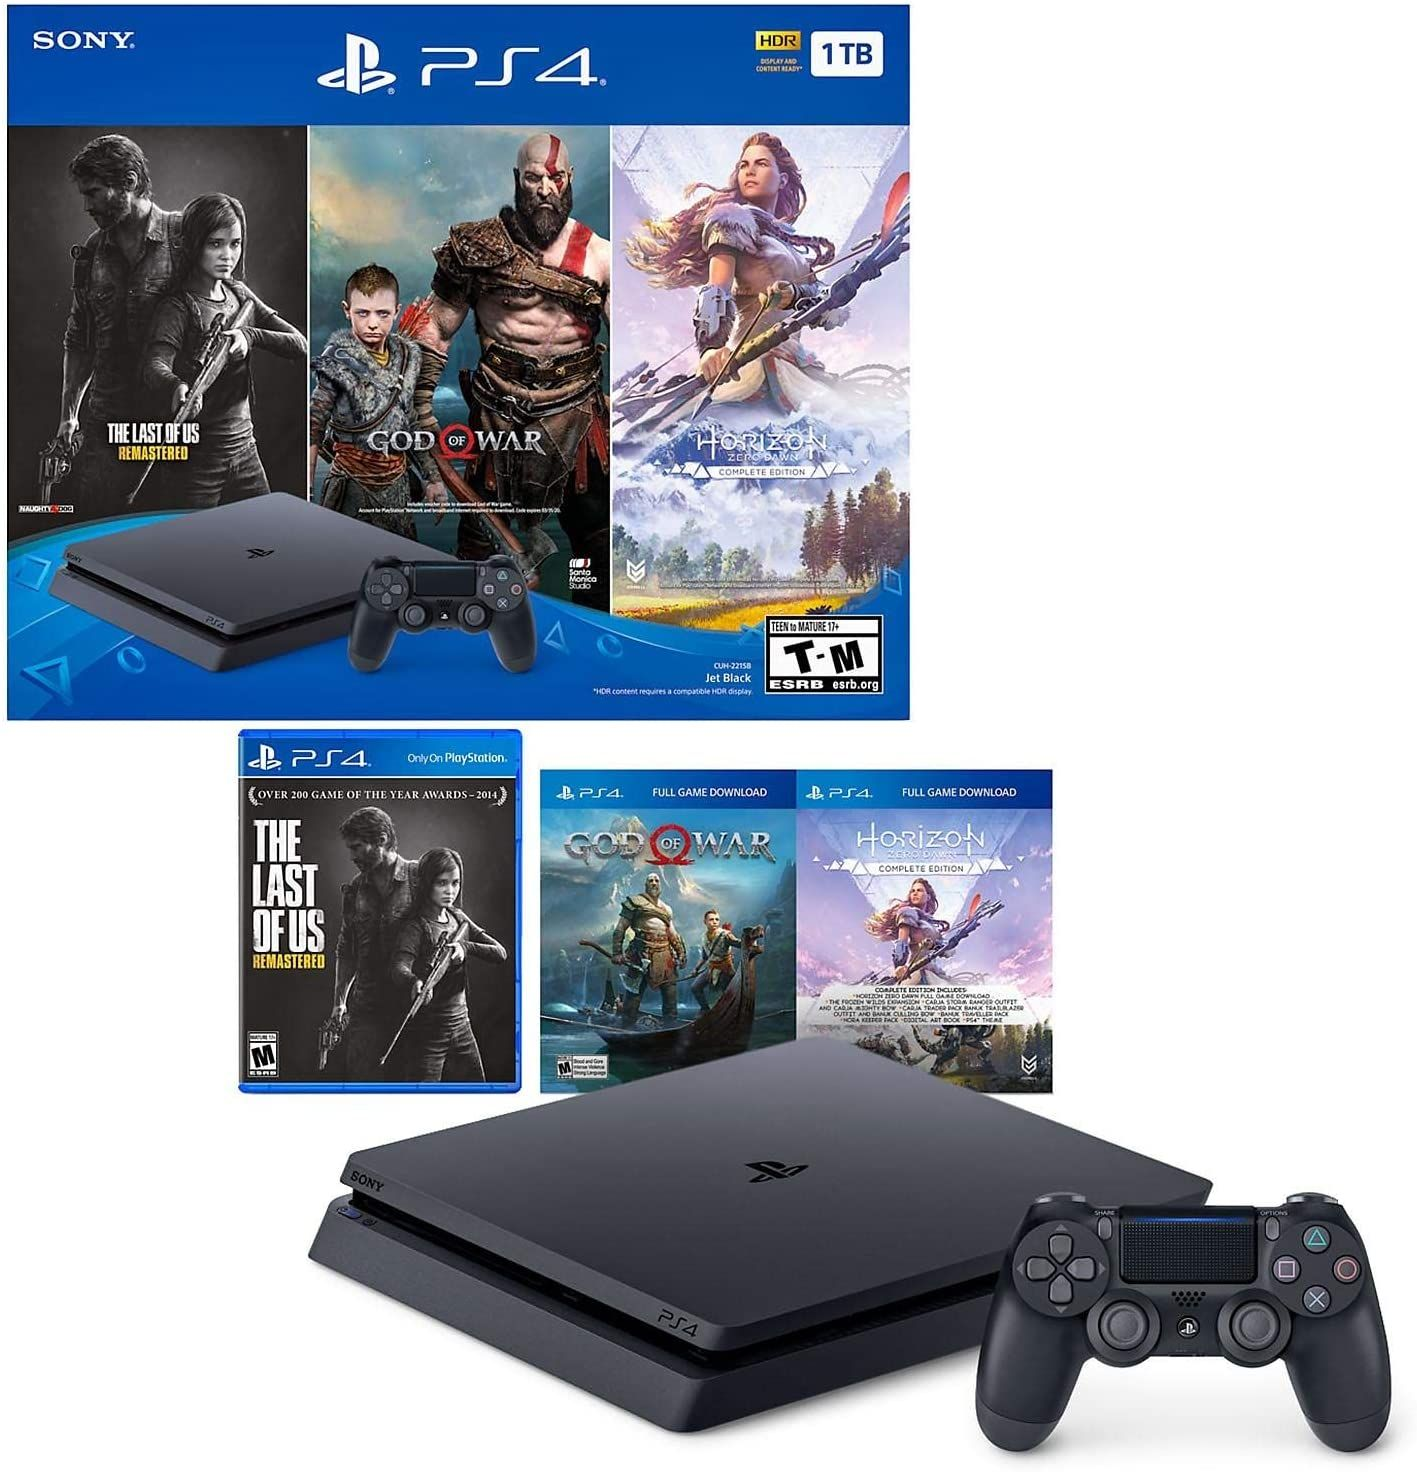 PLAYSTTION 4 SLIM 1 TB CONSOLE in 2020 Playstation 4